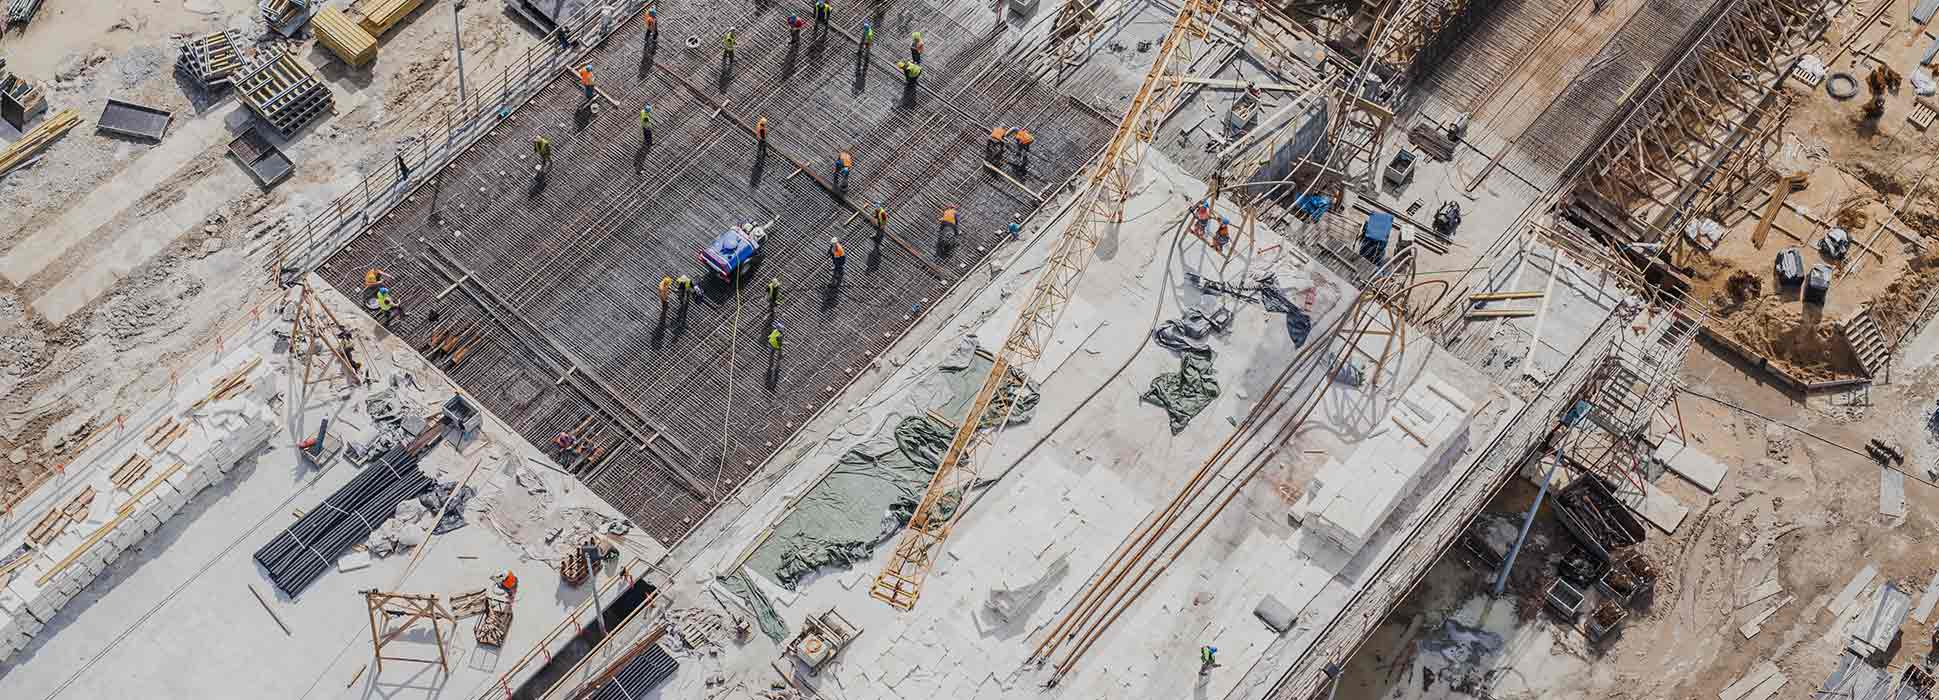 overhead view of building site